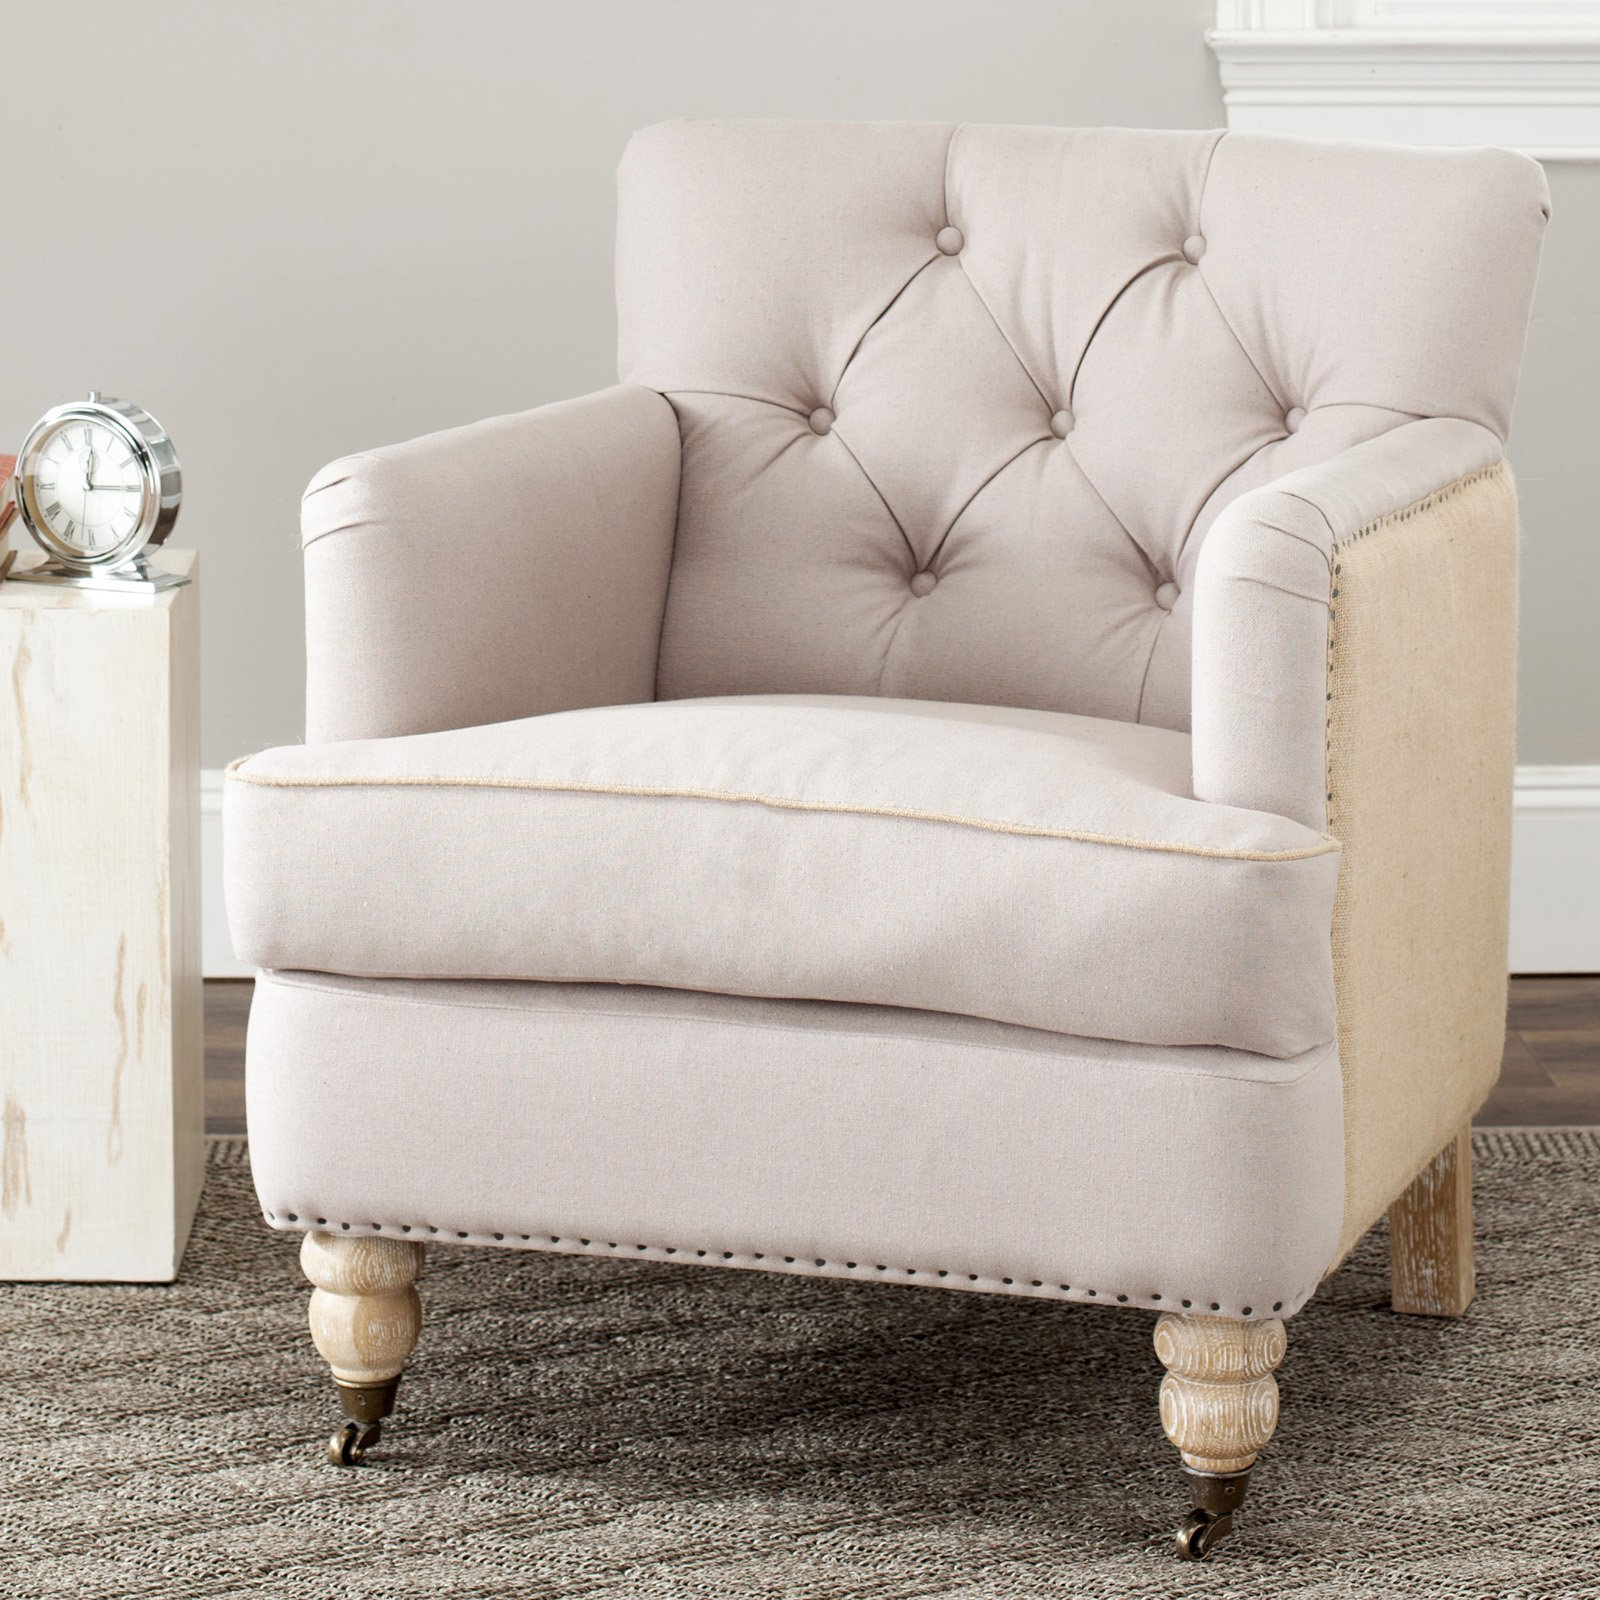 Safavieh Colin Tufted Club Chair Taupe / Beige / White